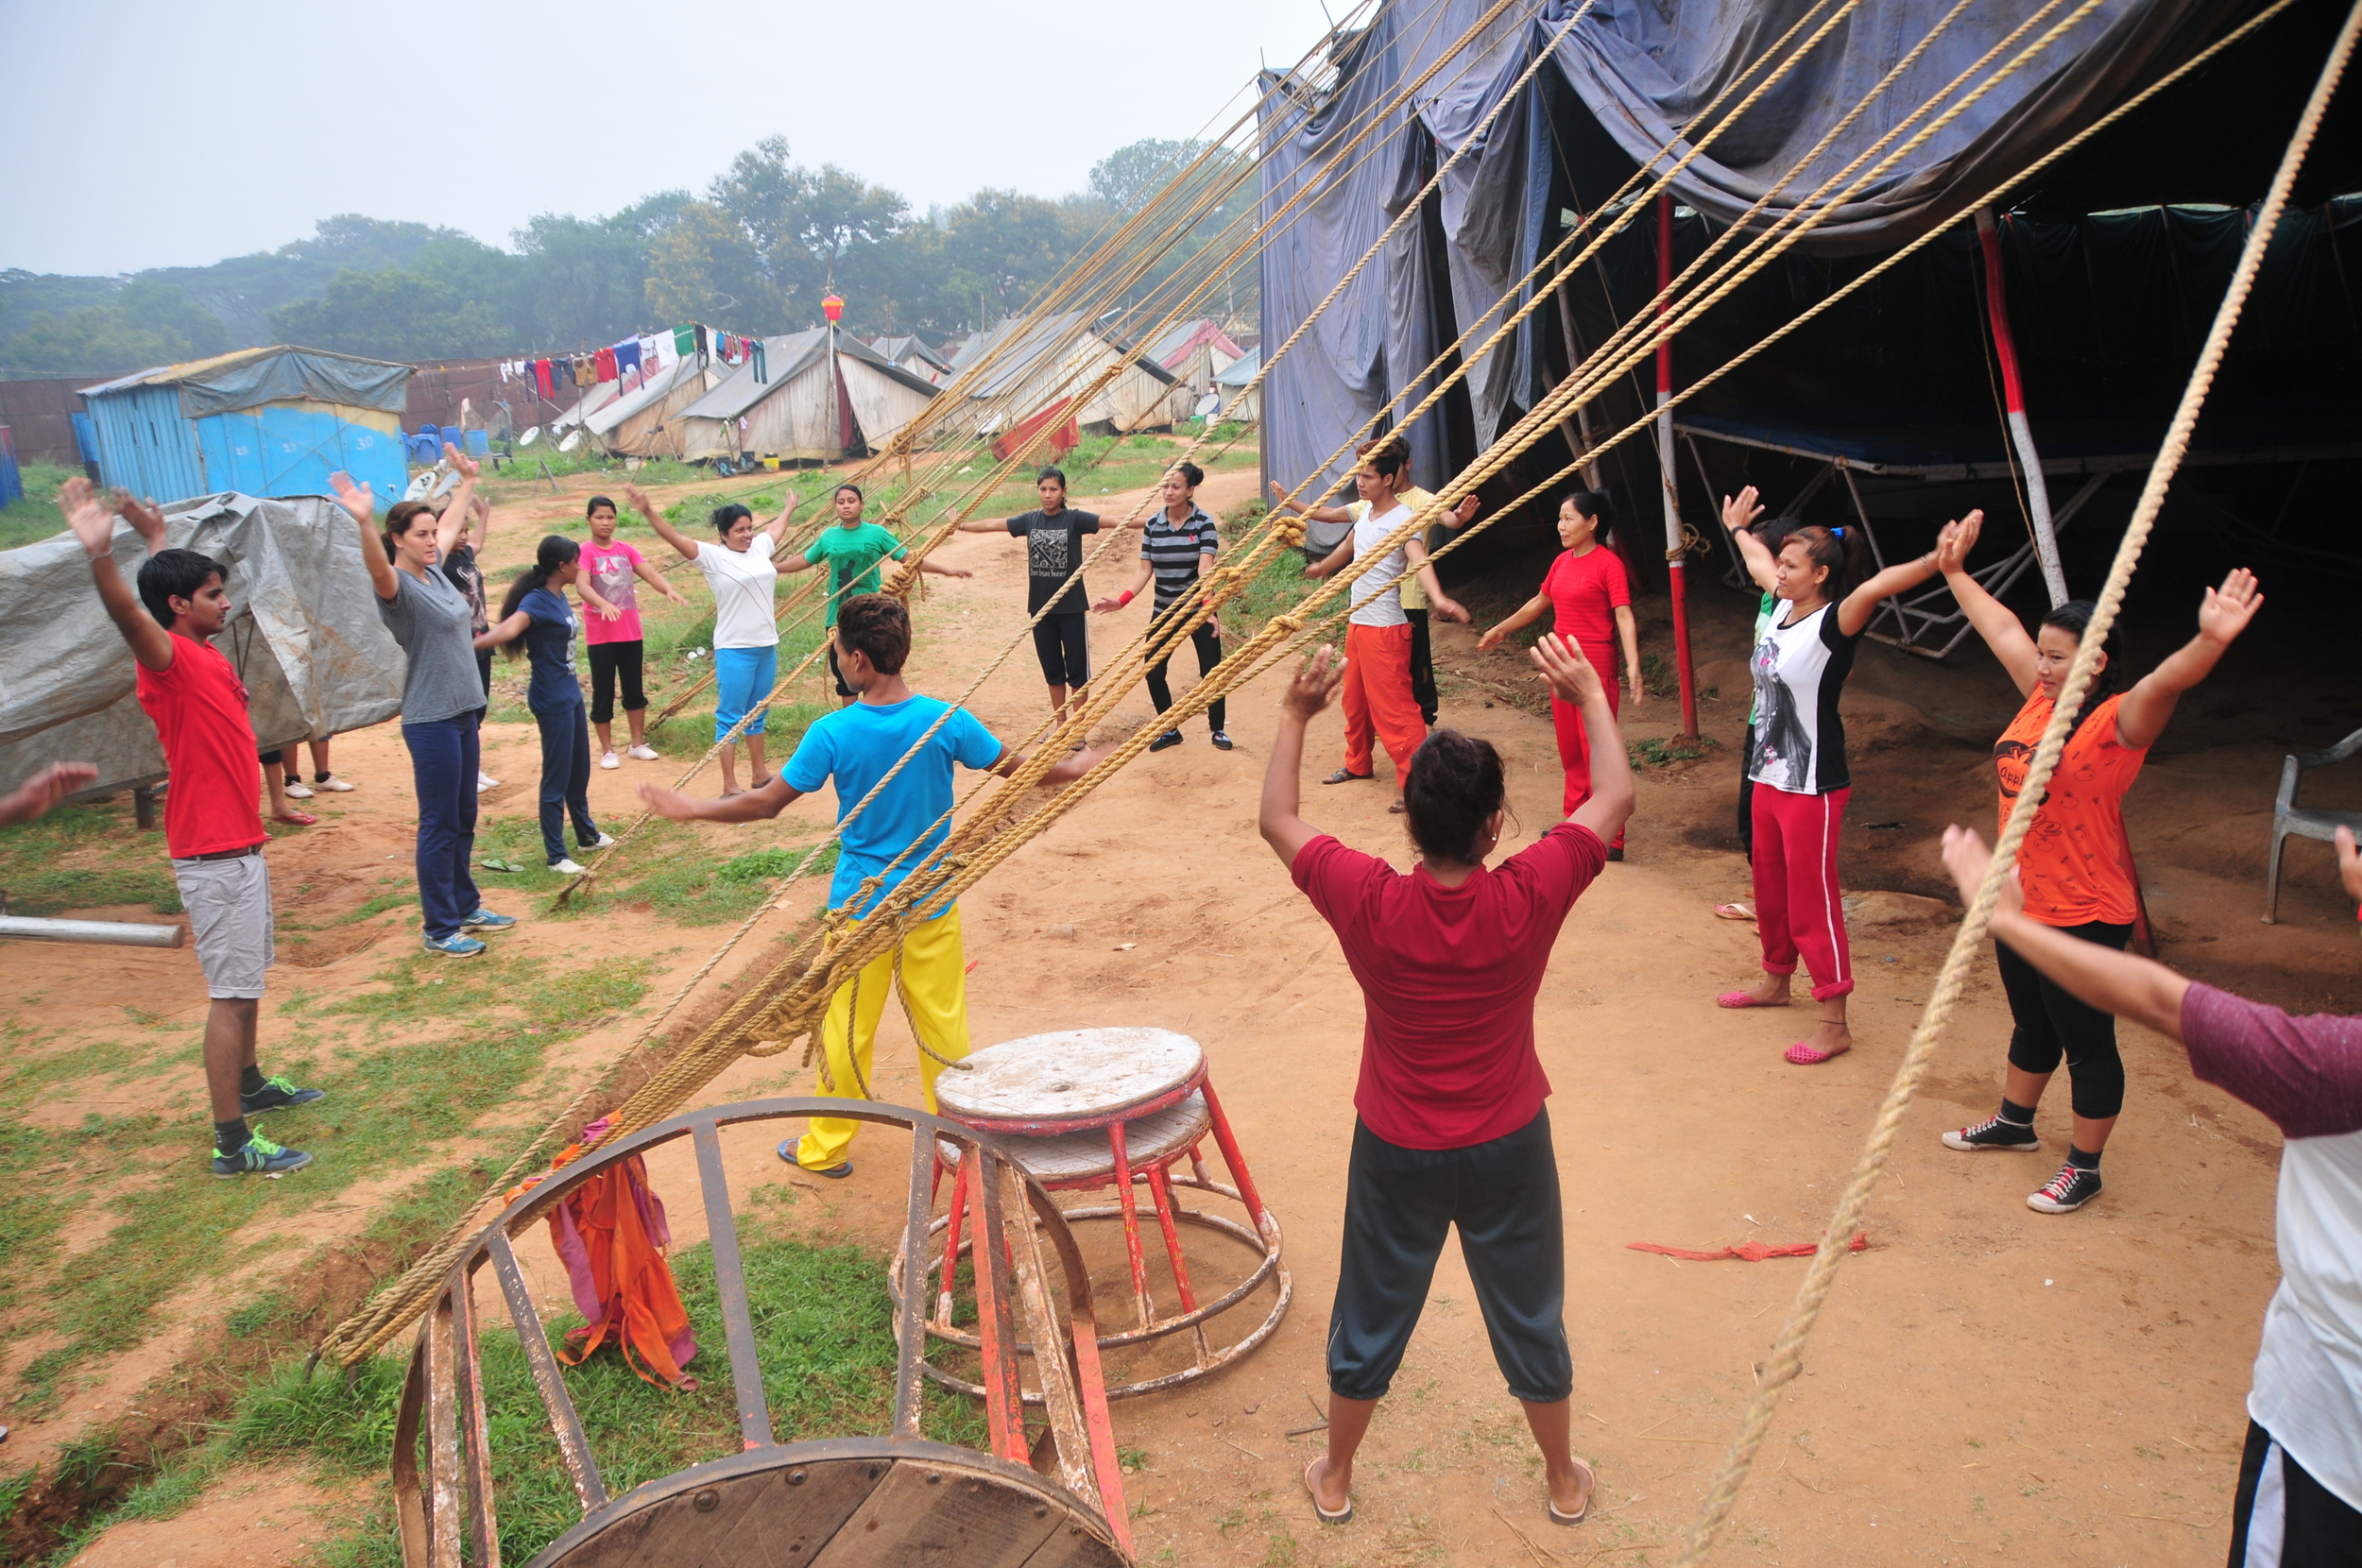 Early morning warm up to prepare for daily training at backstage of the big top, home tents in the background. Photo: John Nyagah